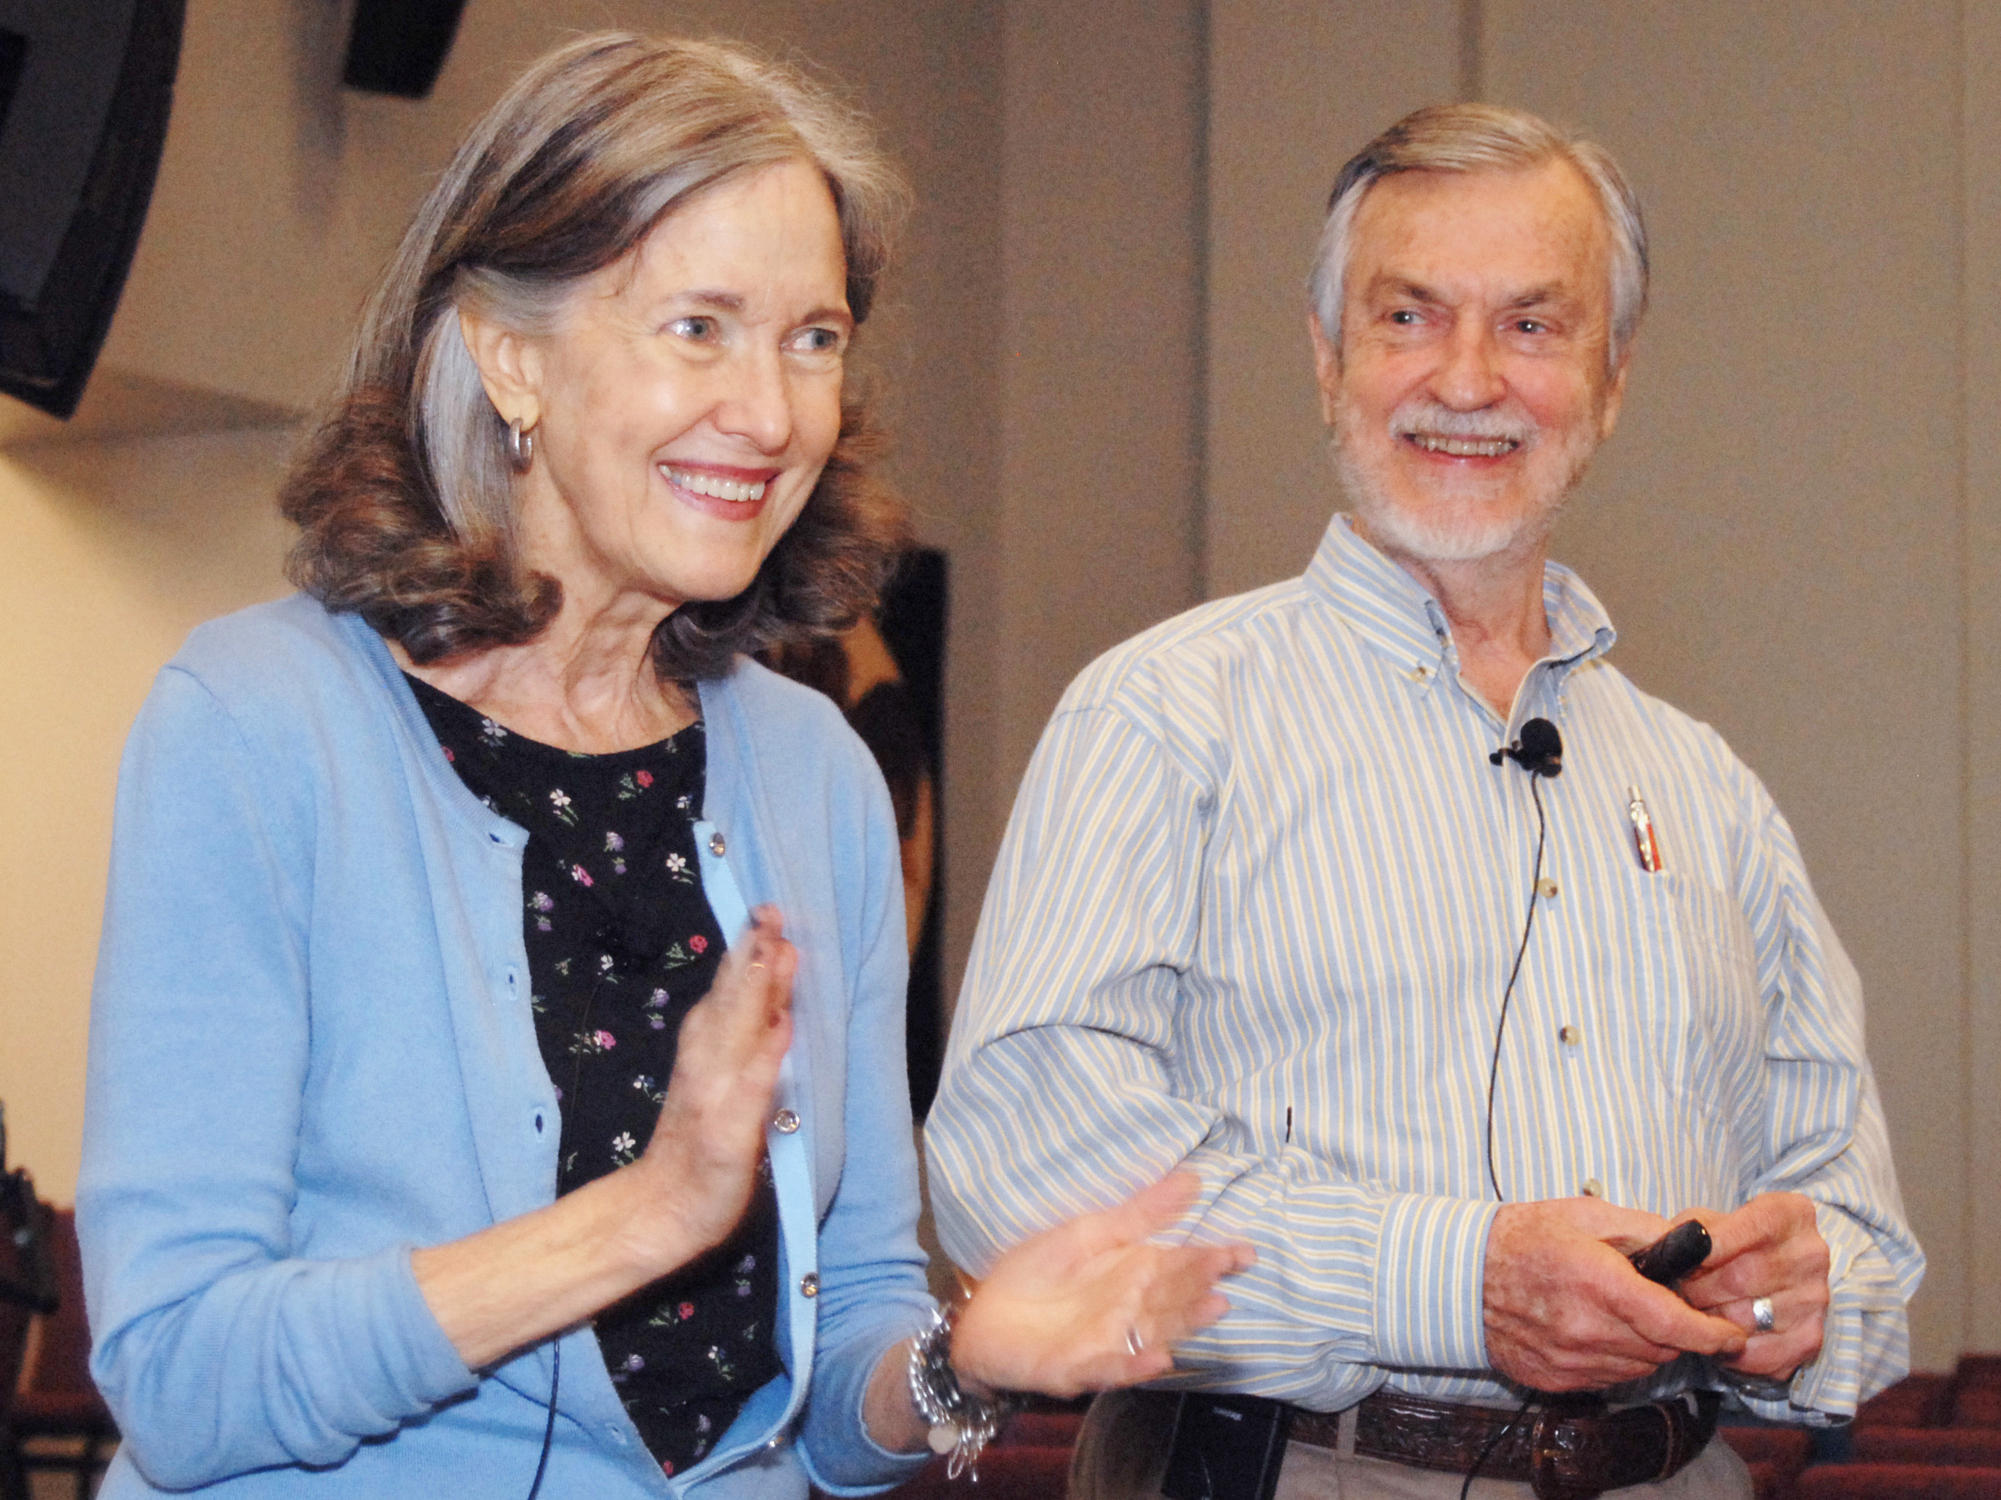 Self-help guru Harville Hendrix and his wife Helen LaKelly Hunt are  offering free relationship therapy workshops to Dallas-area couples.